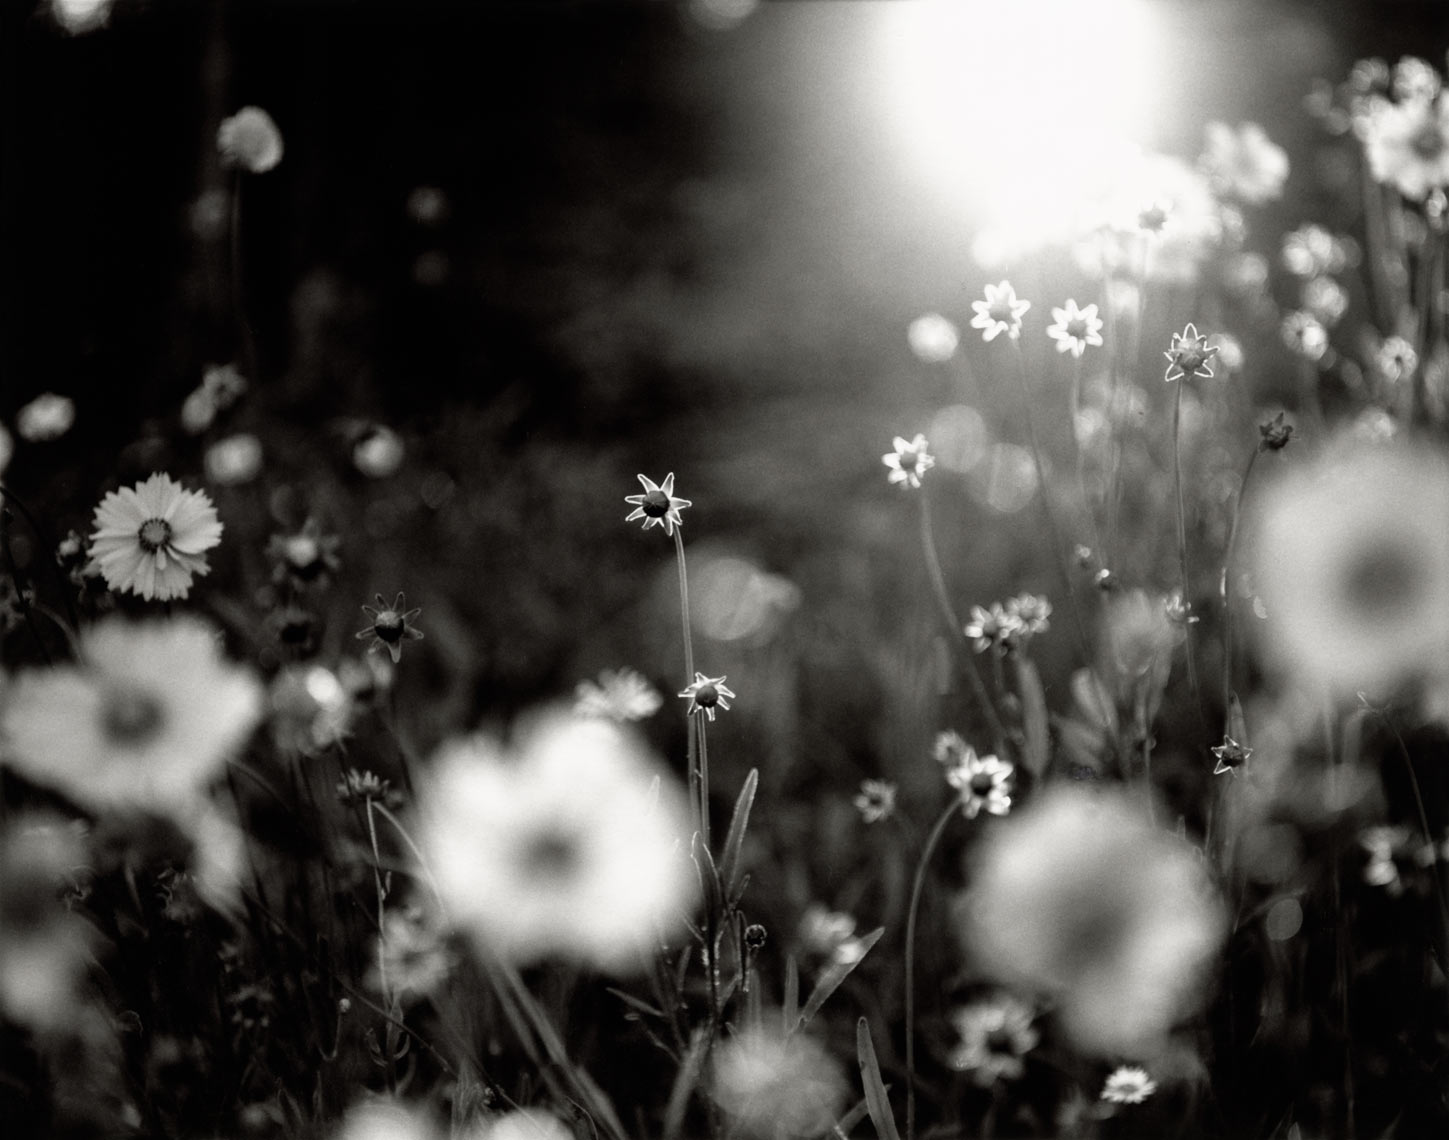 David Lebe; Coreopsis At Sunset, 1996, garden black and white photograph